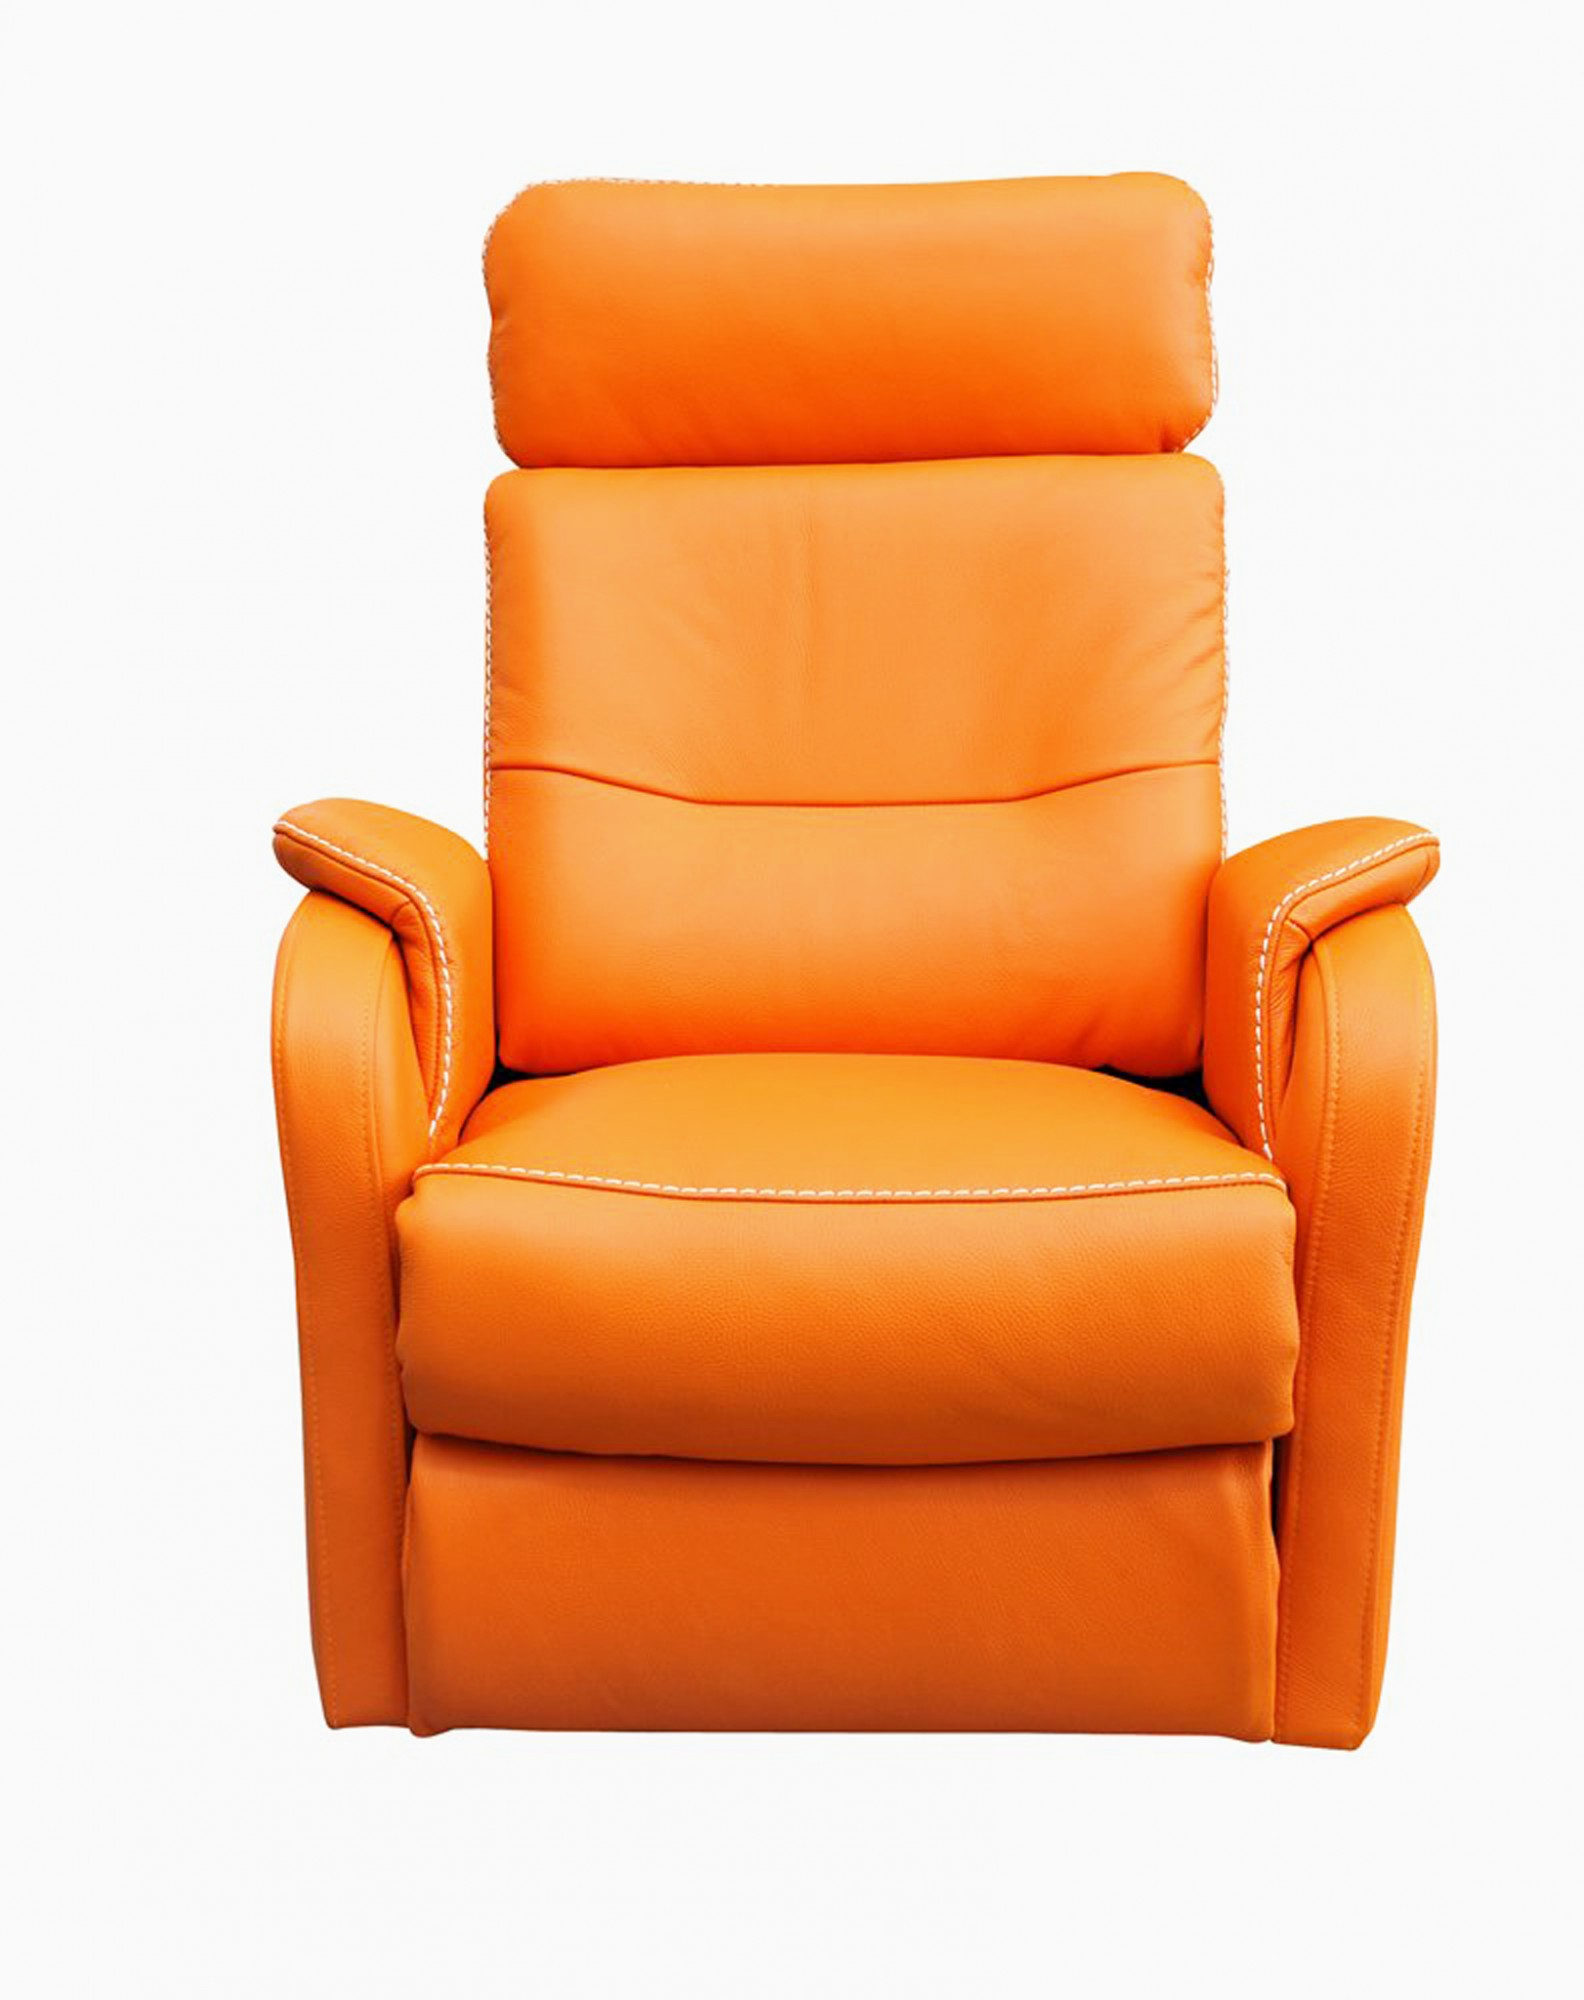 Caro leather reclining armchair